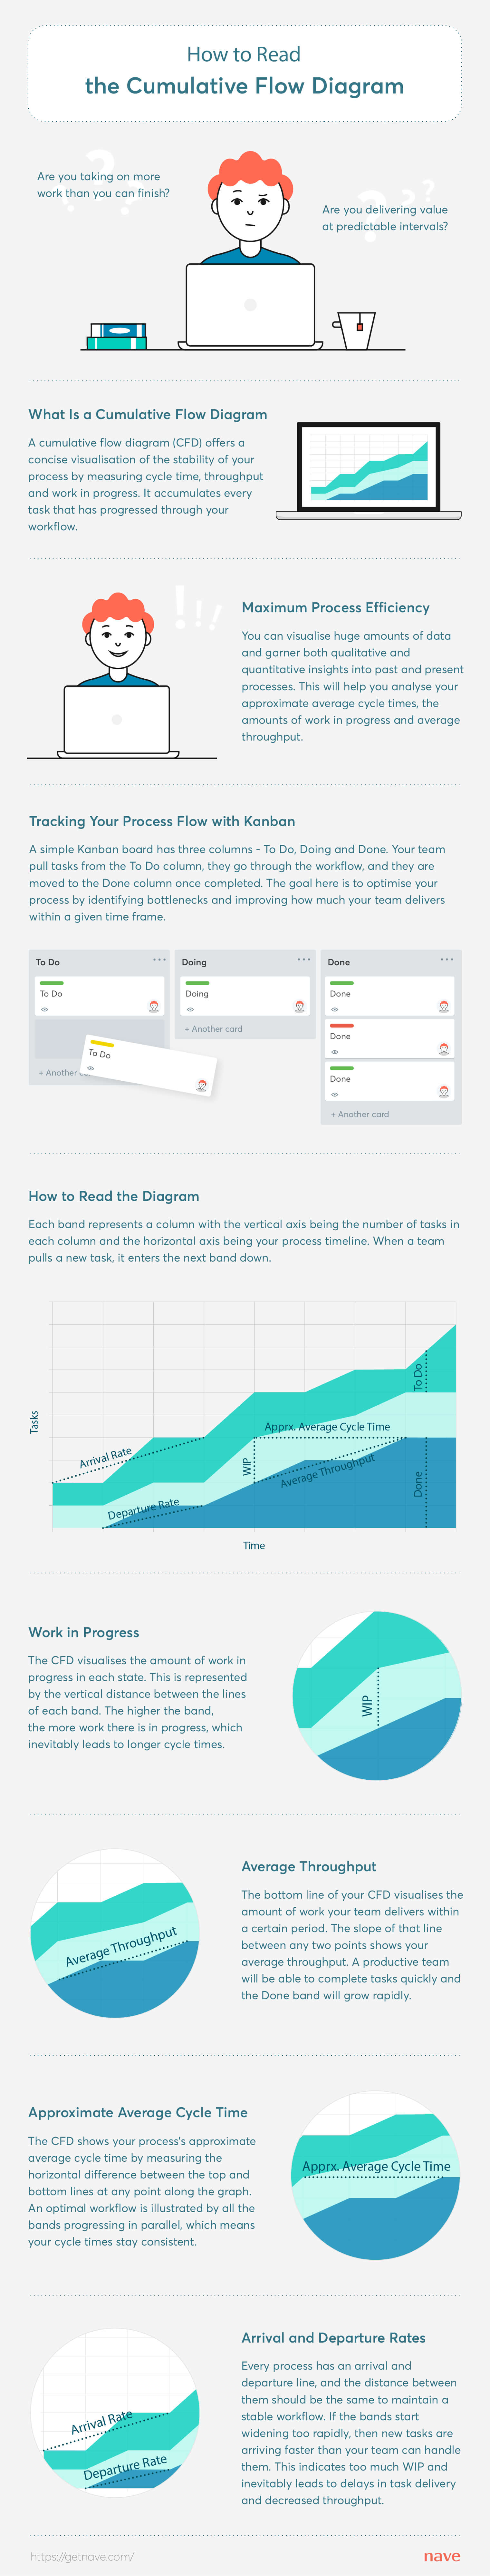 How to read the Cumulative Flow Diagram (Infographic)